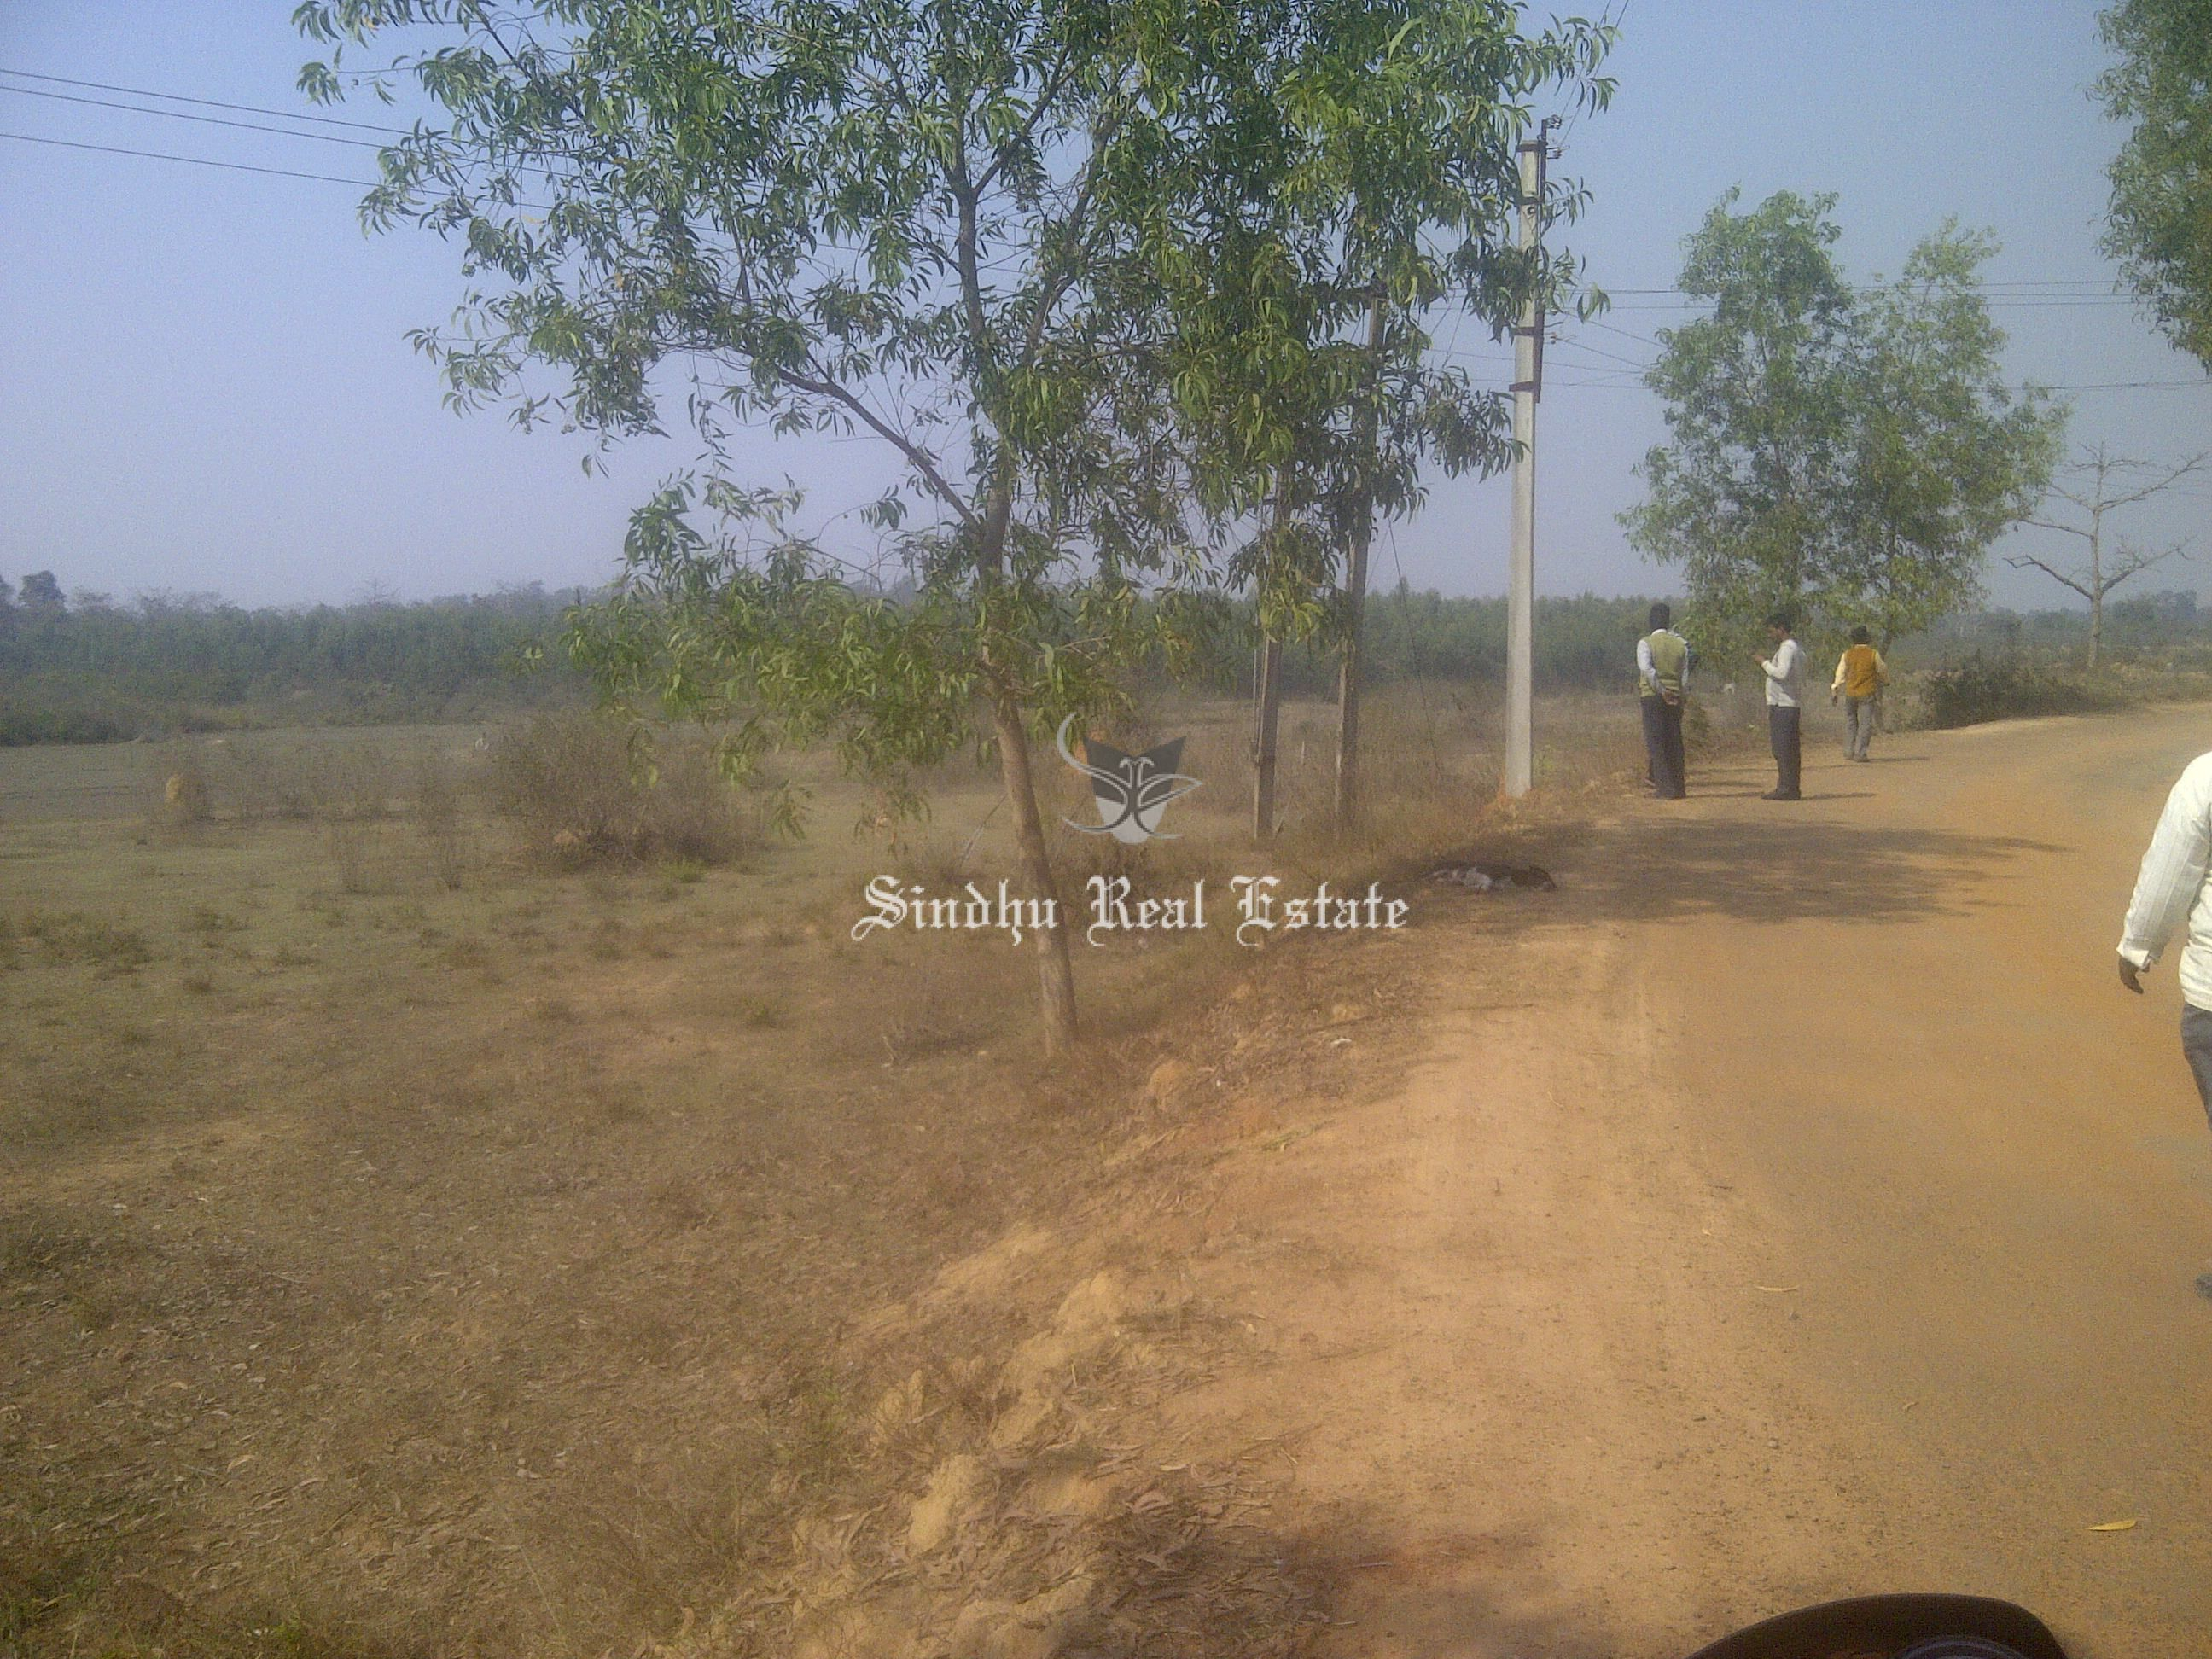 Commercial Land Is for Sale in Dhaulagarh